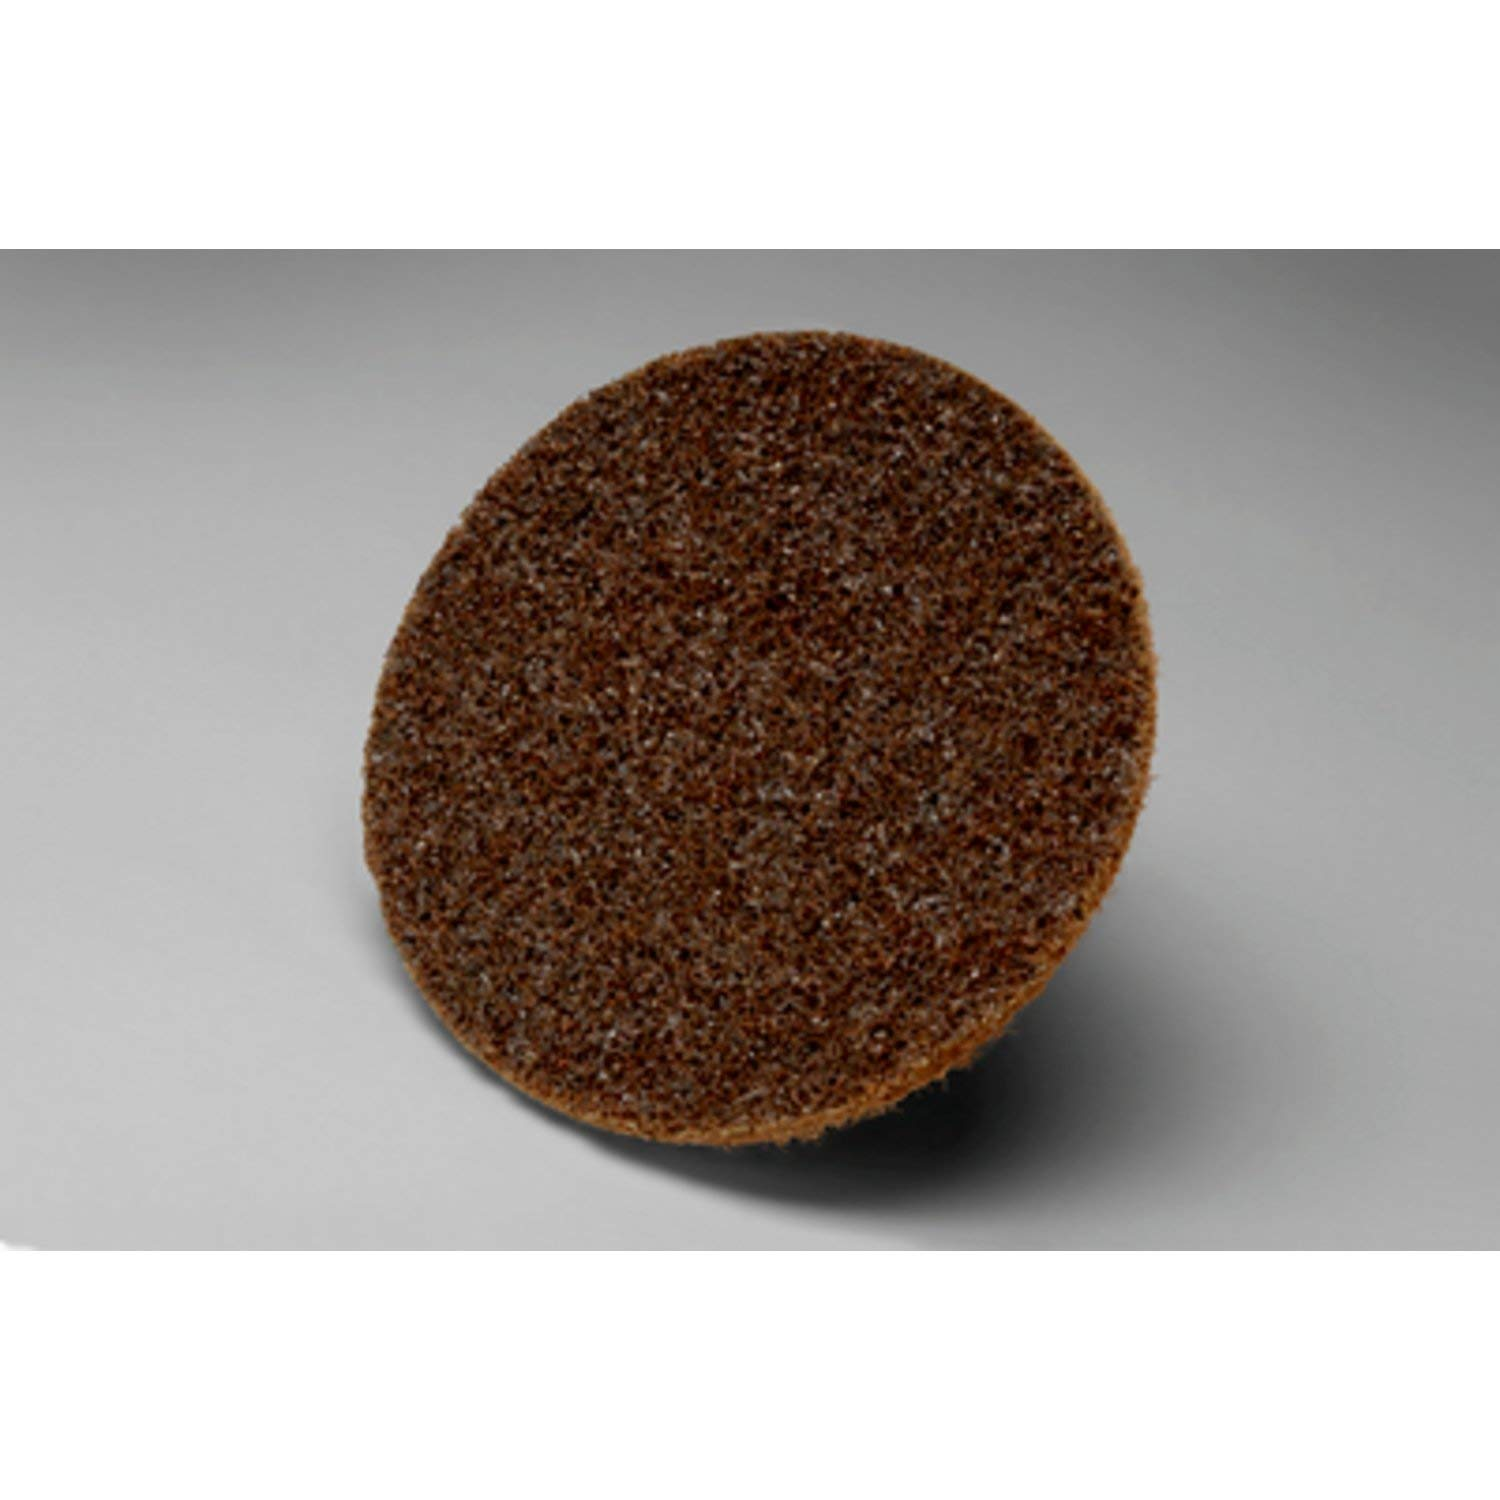 B008S3E8GS Scotch-Brite Roloc SE Surface Conditioning Disc, TR, 2 in x NH, A CRS, 50 per carton 61jL9MY68rL._SL1500_